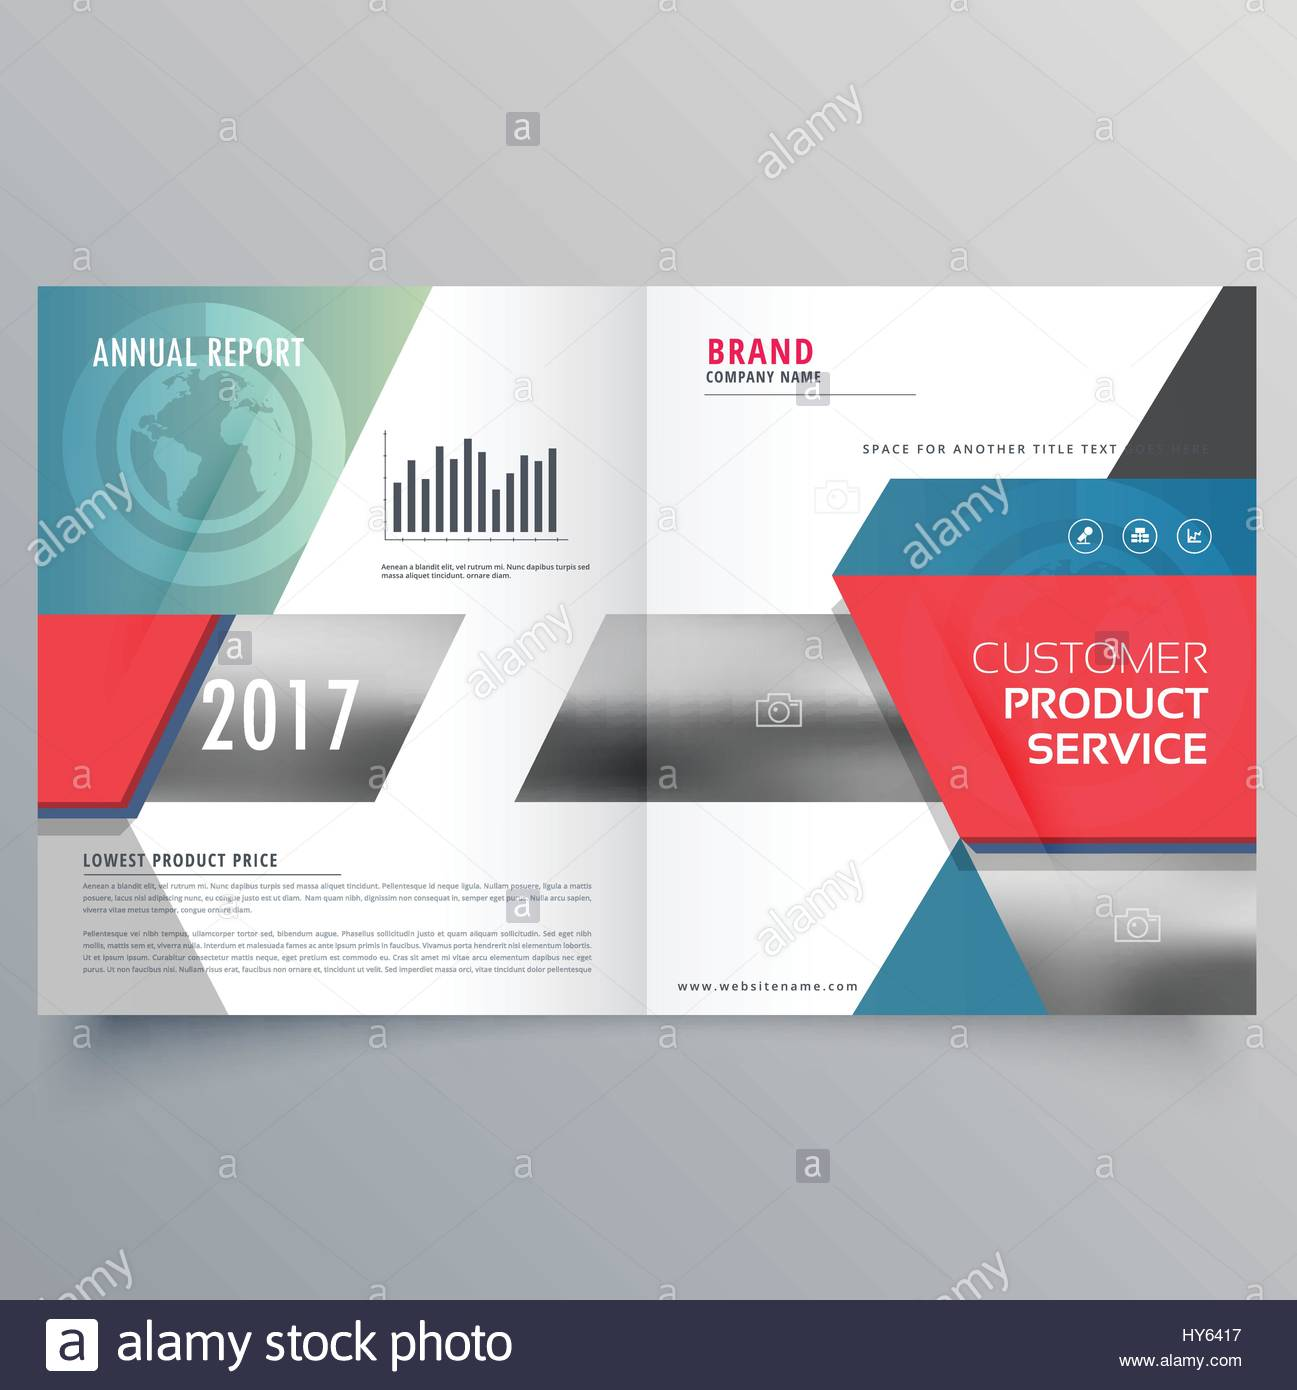 Modern creative business magazine cover or bifold brochure template modern creative business magazine cover or bifold brochure template design flashek Choice Image